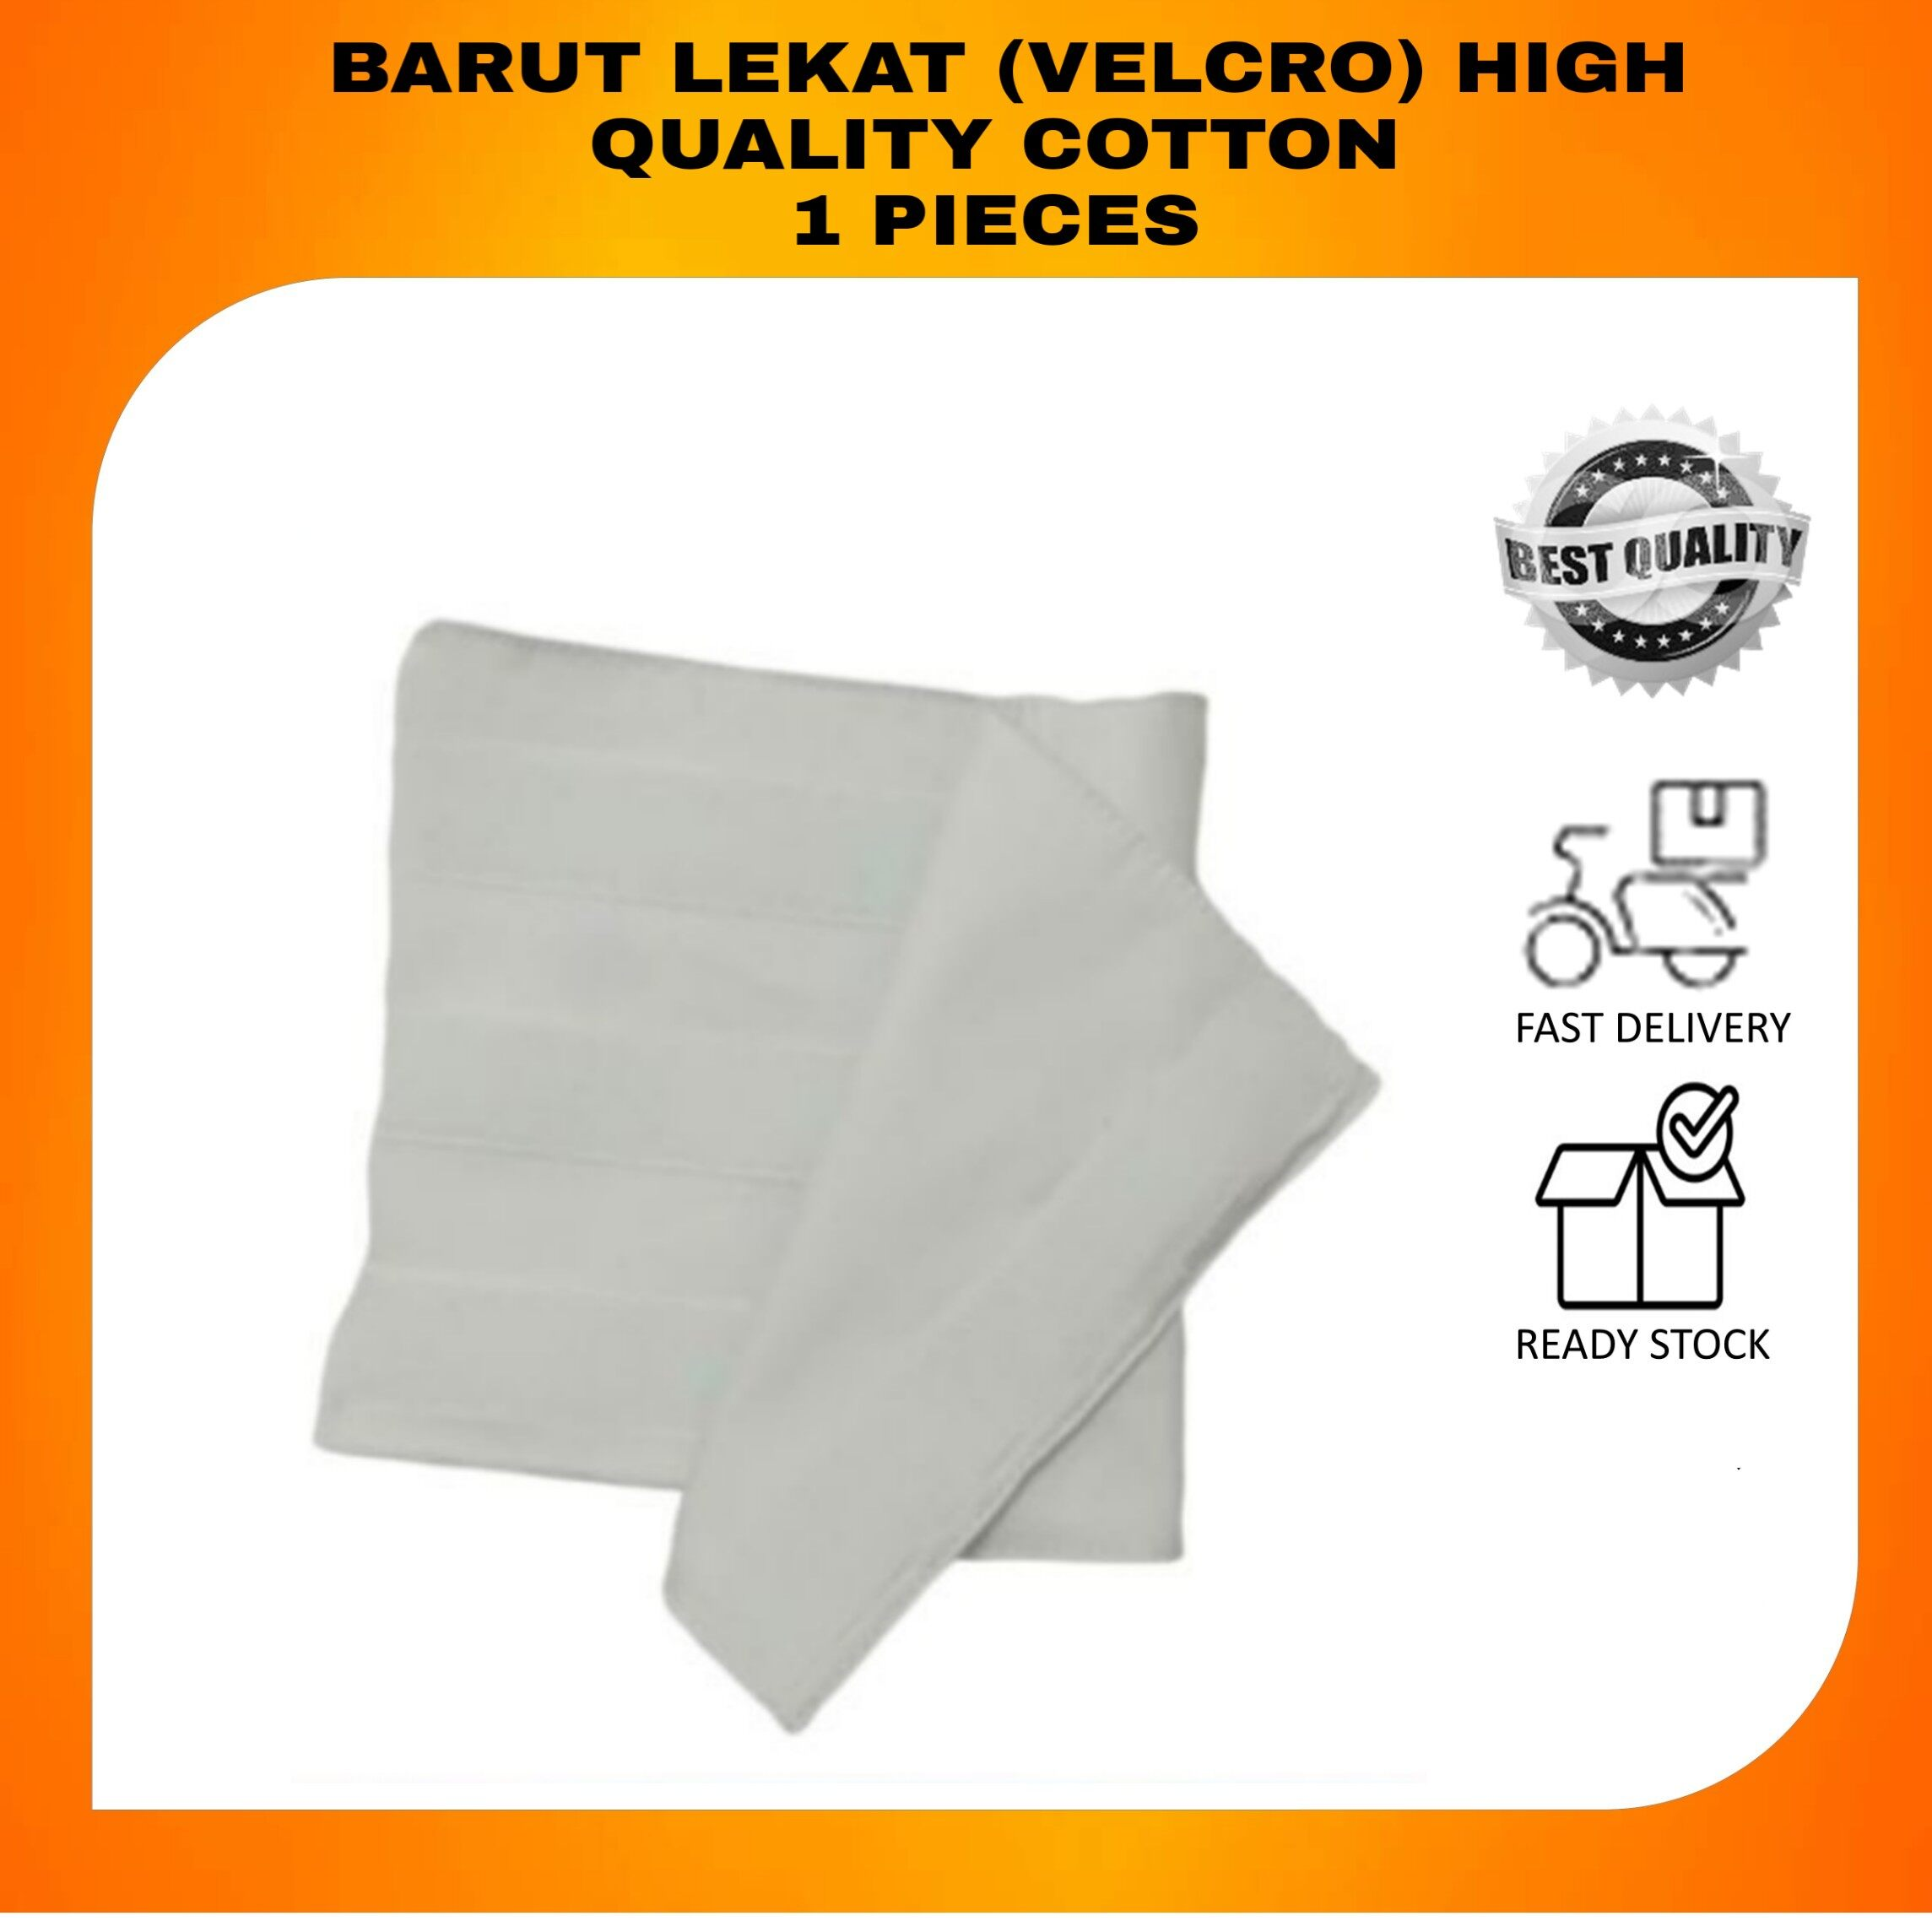 BEST BUY BARUT LEKAT (VELCRO) HIGH QUALITY COTTON